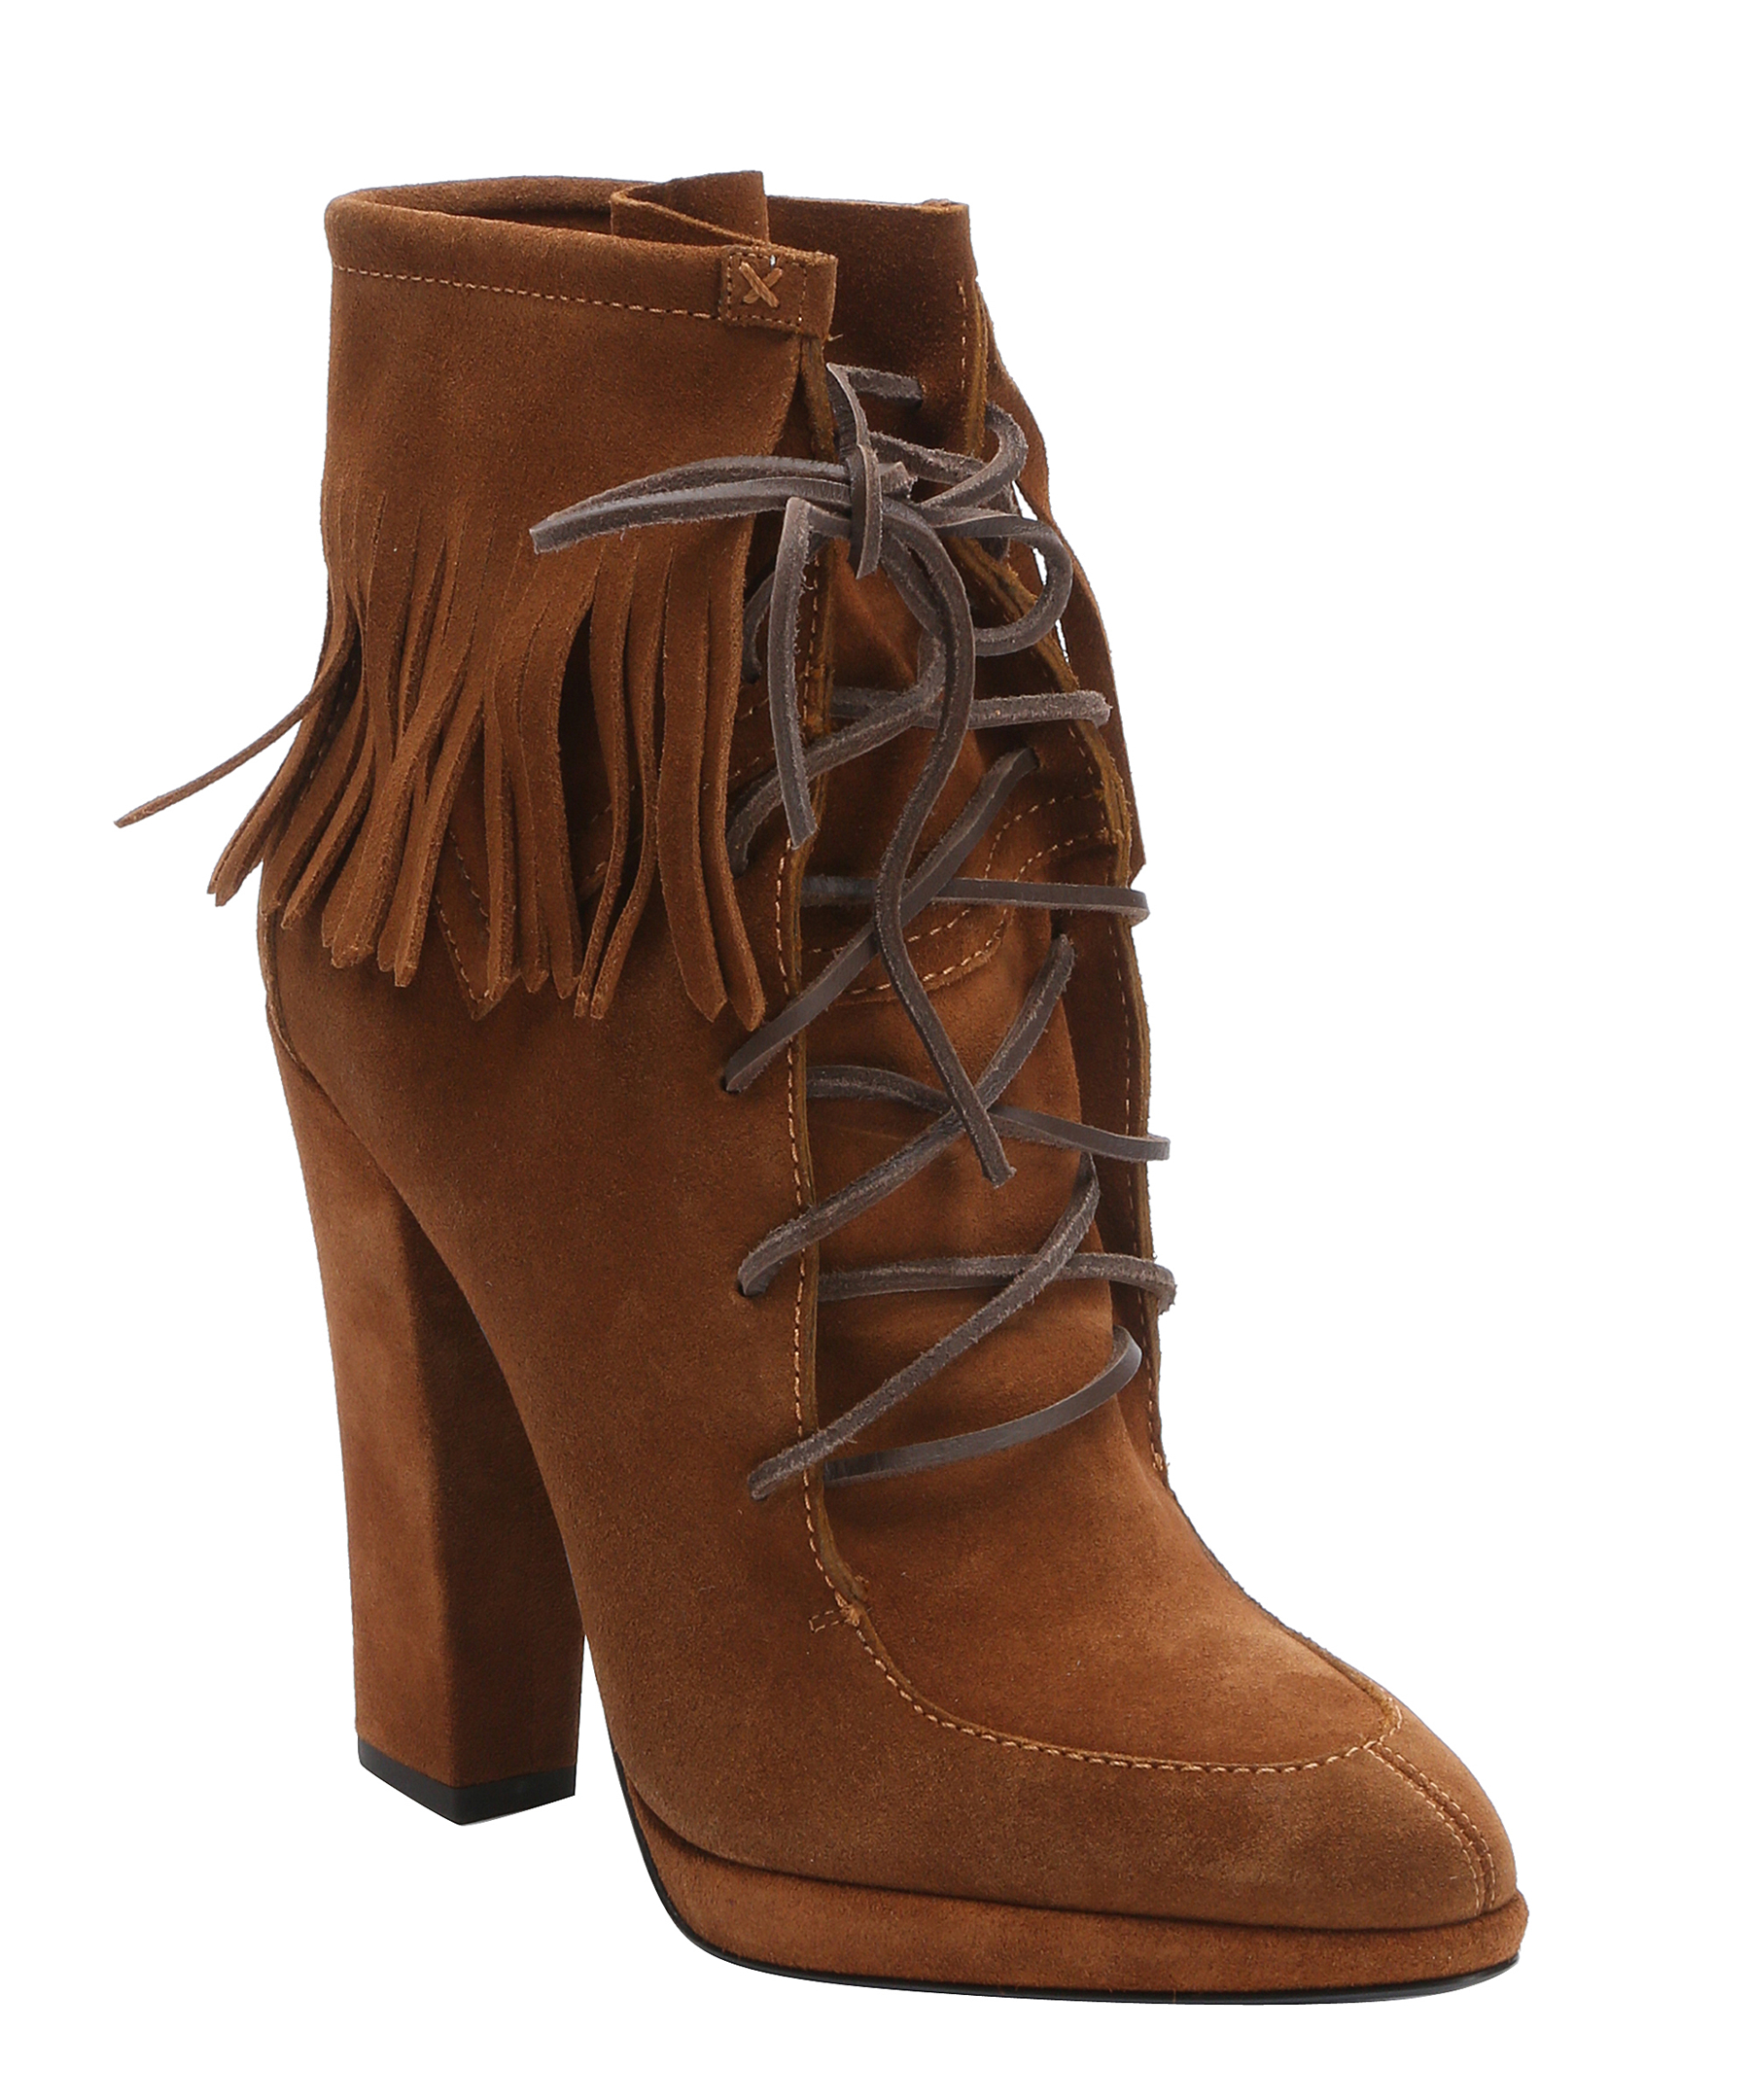 Find brown suede ankle booties at ShopStyle. Shop the latest collection of brown suede ankle booties from the most popular stores - all in one place.